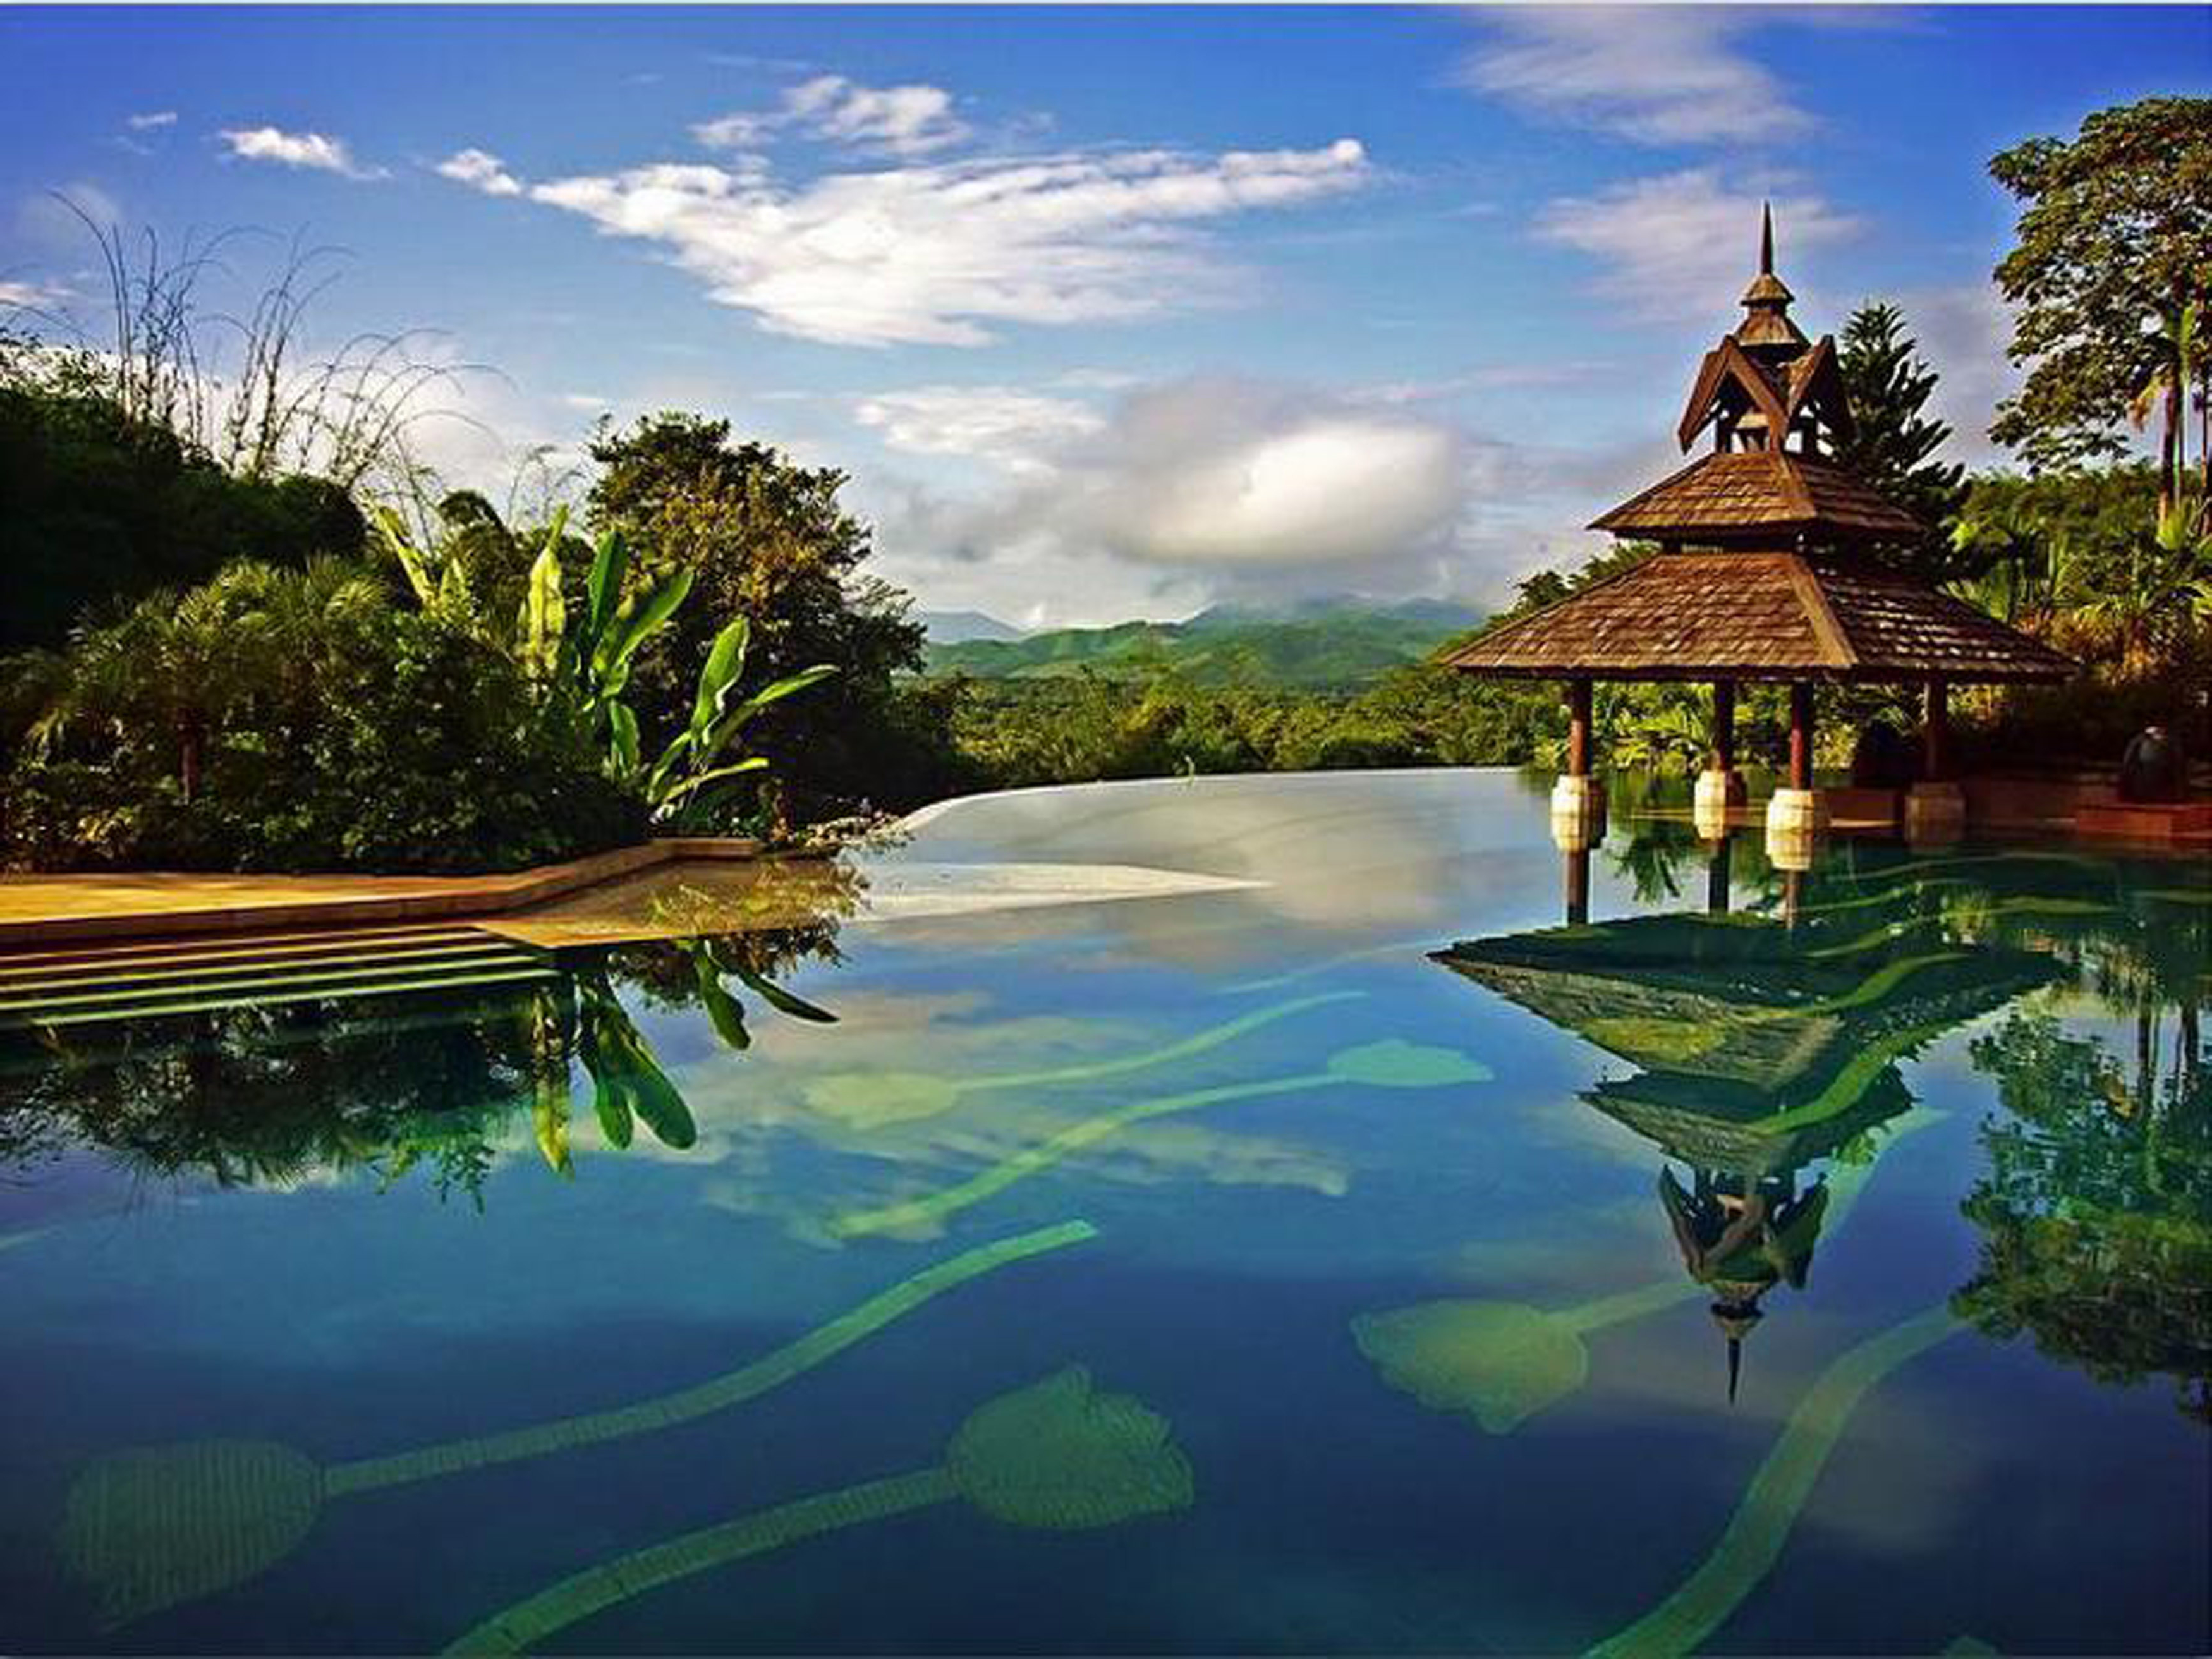 Amazing Pool Hotel With Infinity Pool Hotels With Infinity Pools (View 5 of 28)